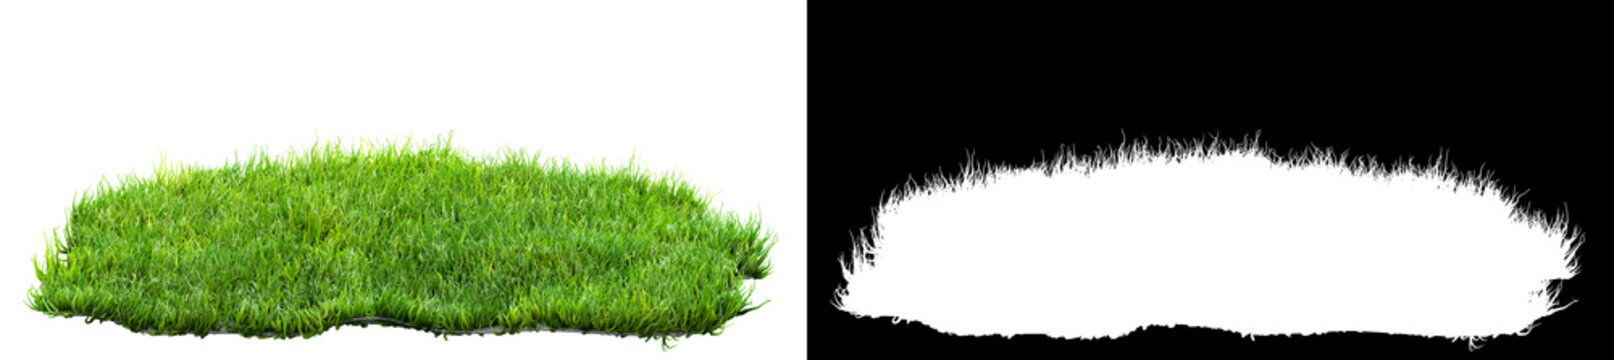 green grass turf isolated on white background with alpha mask for easy isolation 3D illustration